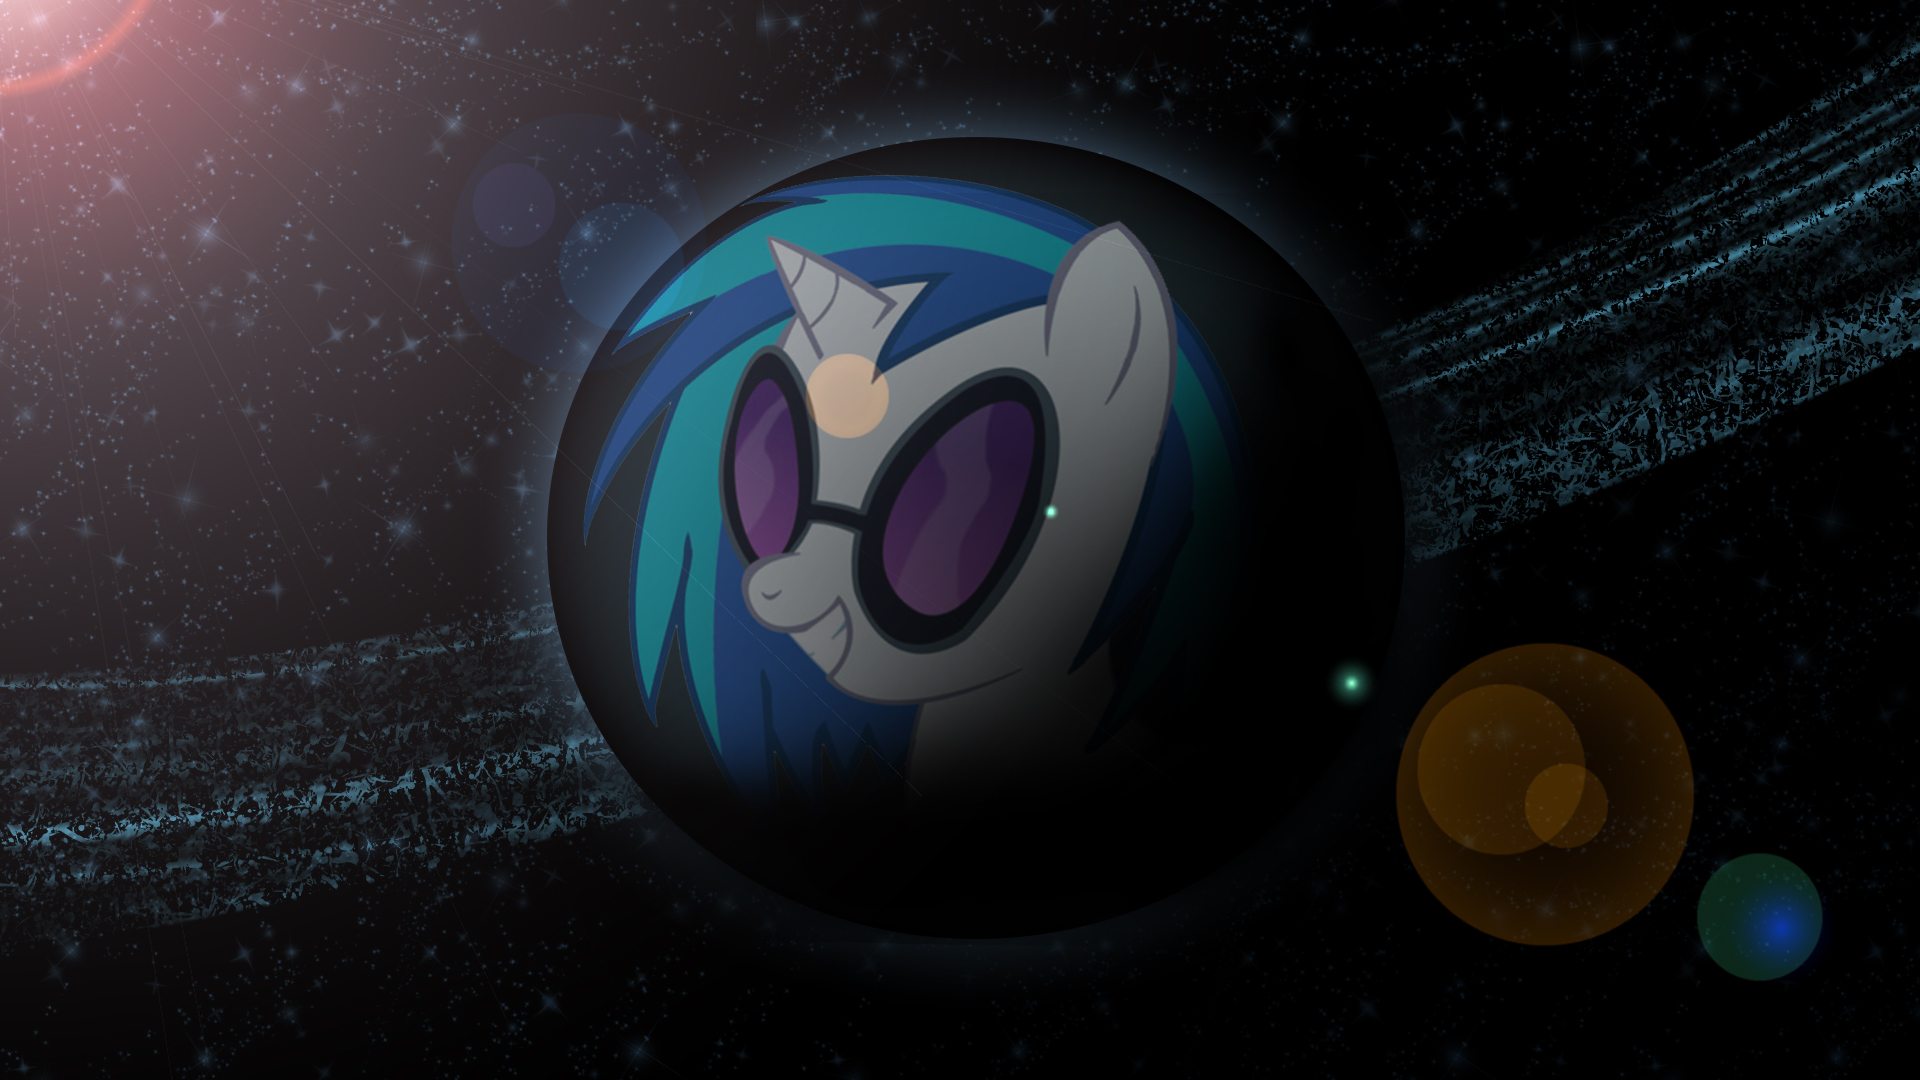 Planet Vinyl Scratch! (Wallpaper) by Hardii